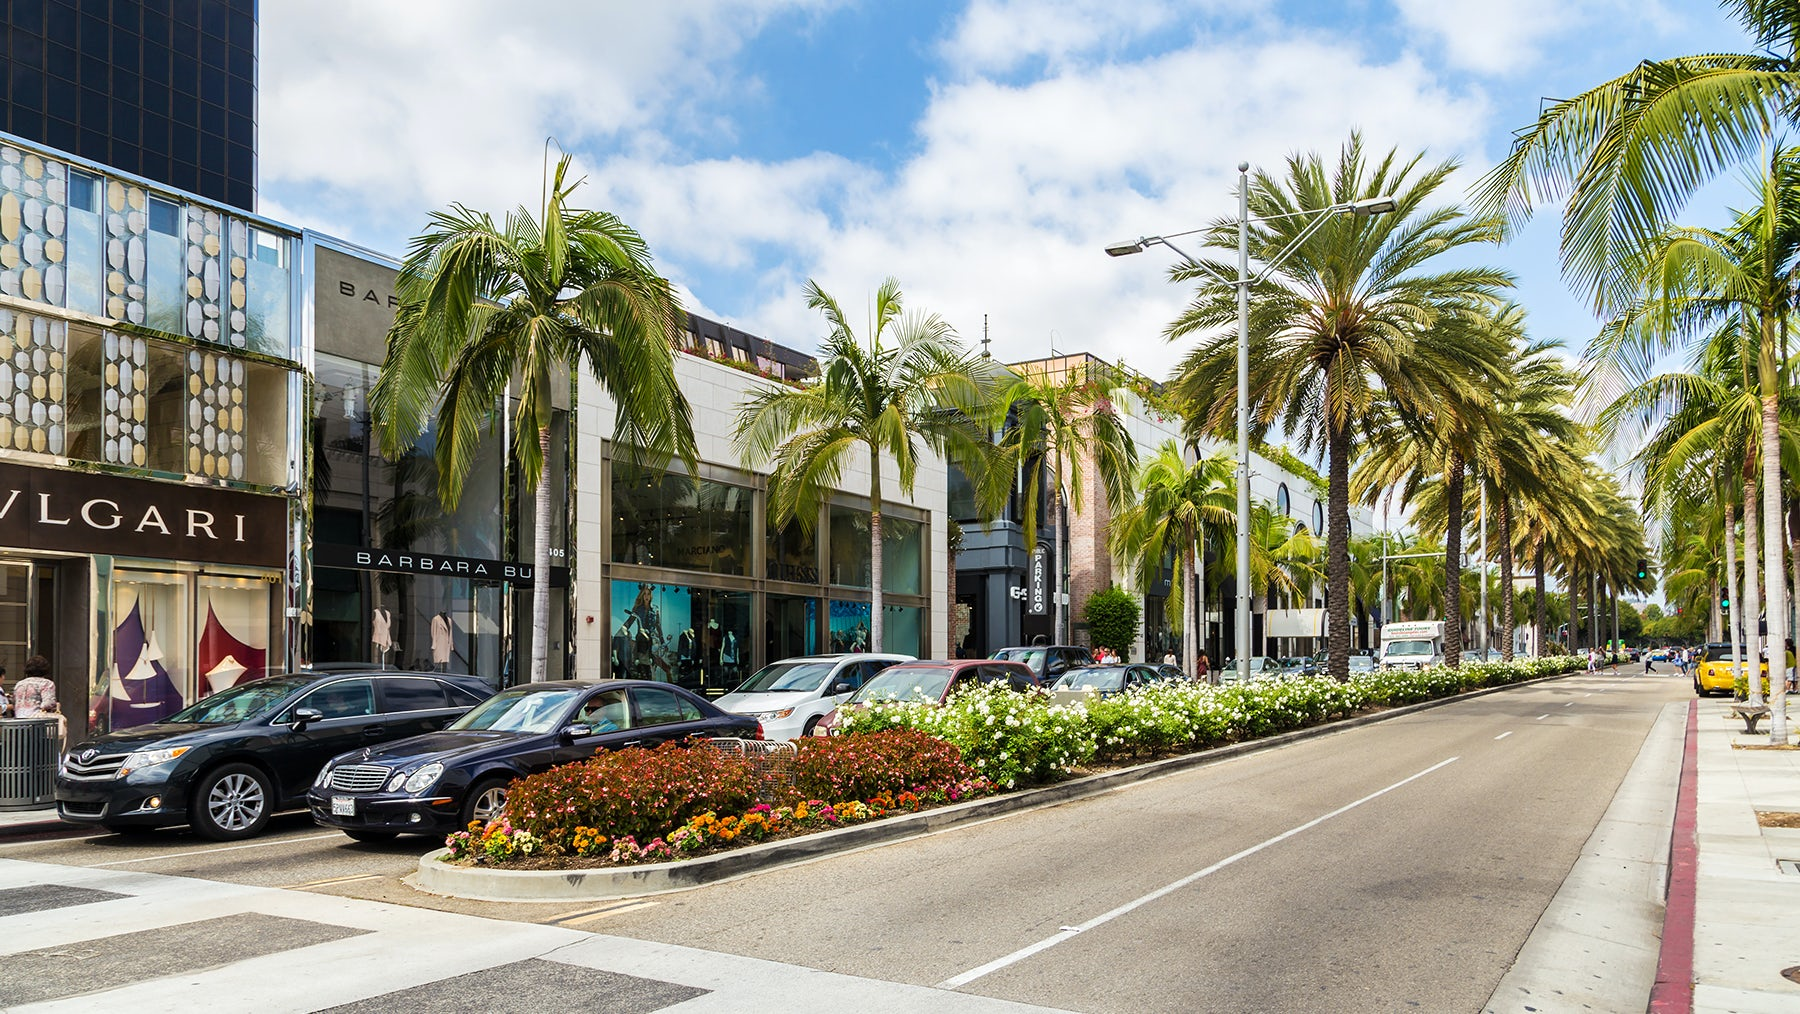 Designer brand stores on Rodeo Drive | Source: Shutterstock